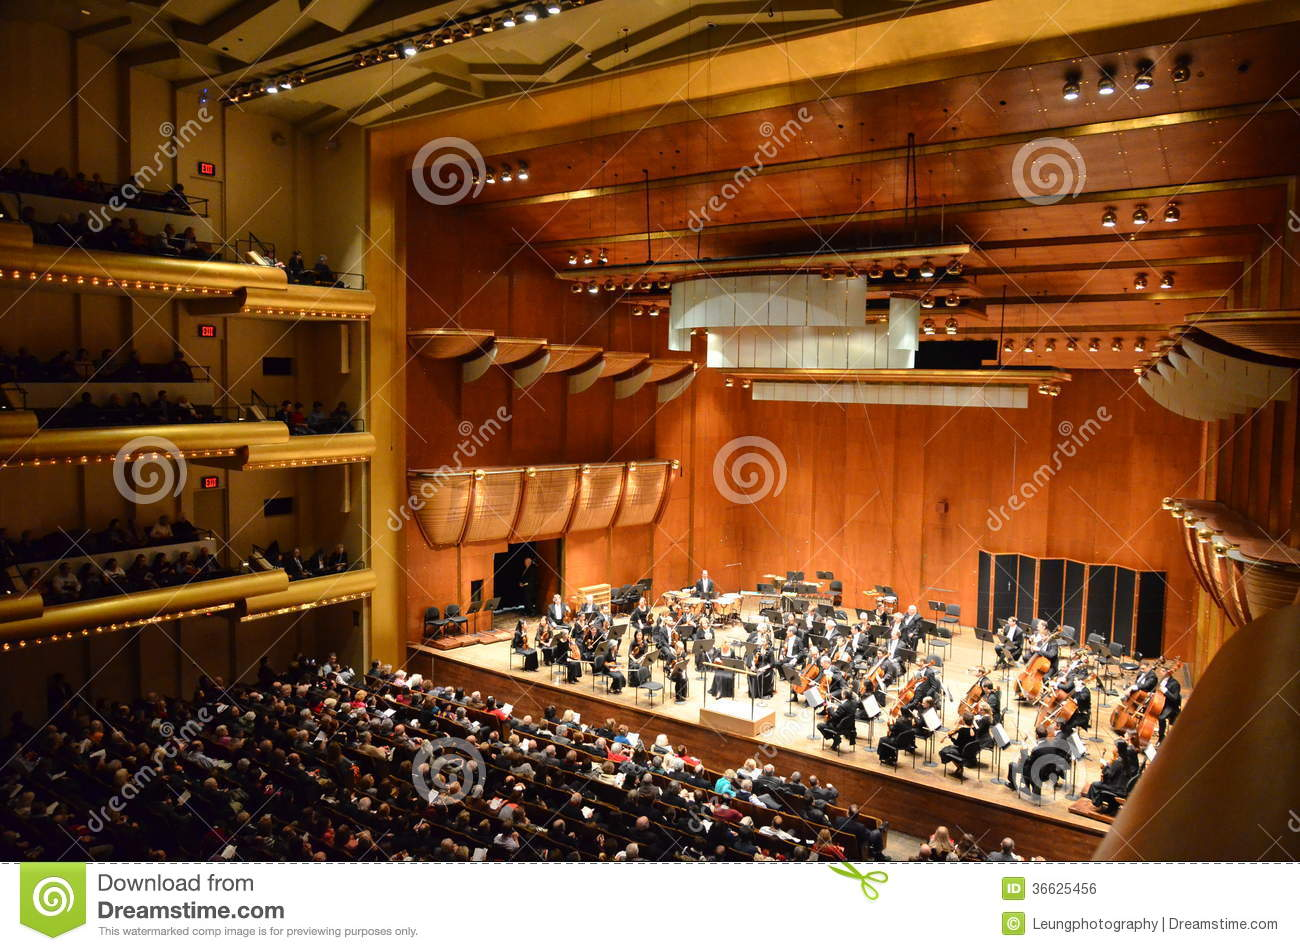 New York Philharmonic At Avery Fisher Hall Lincol